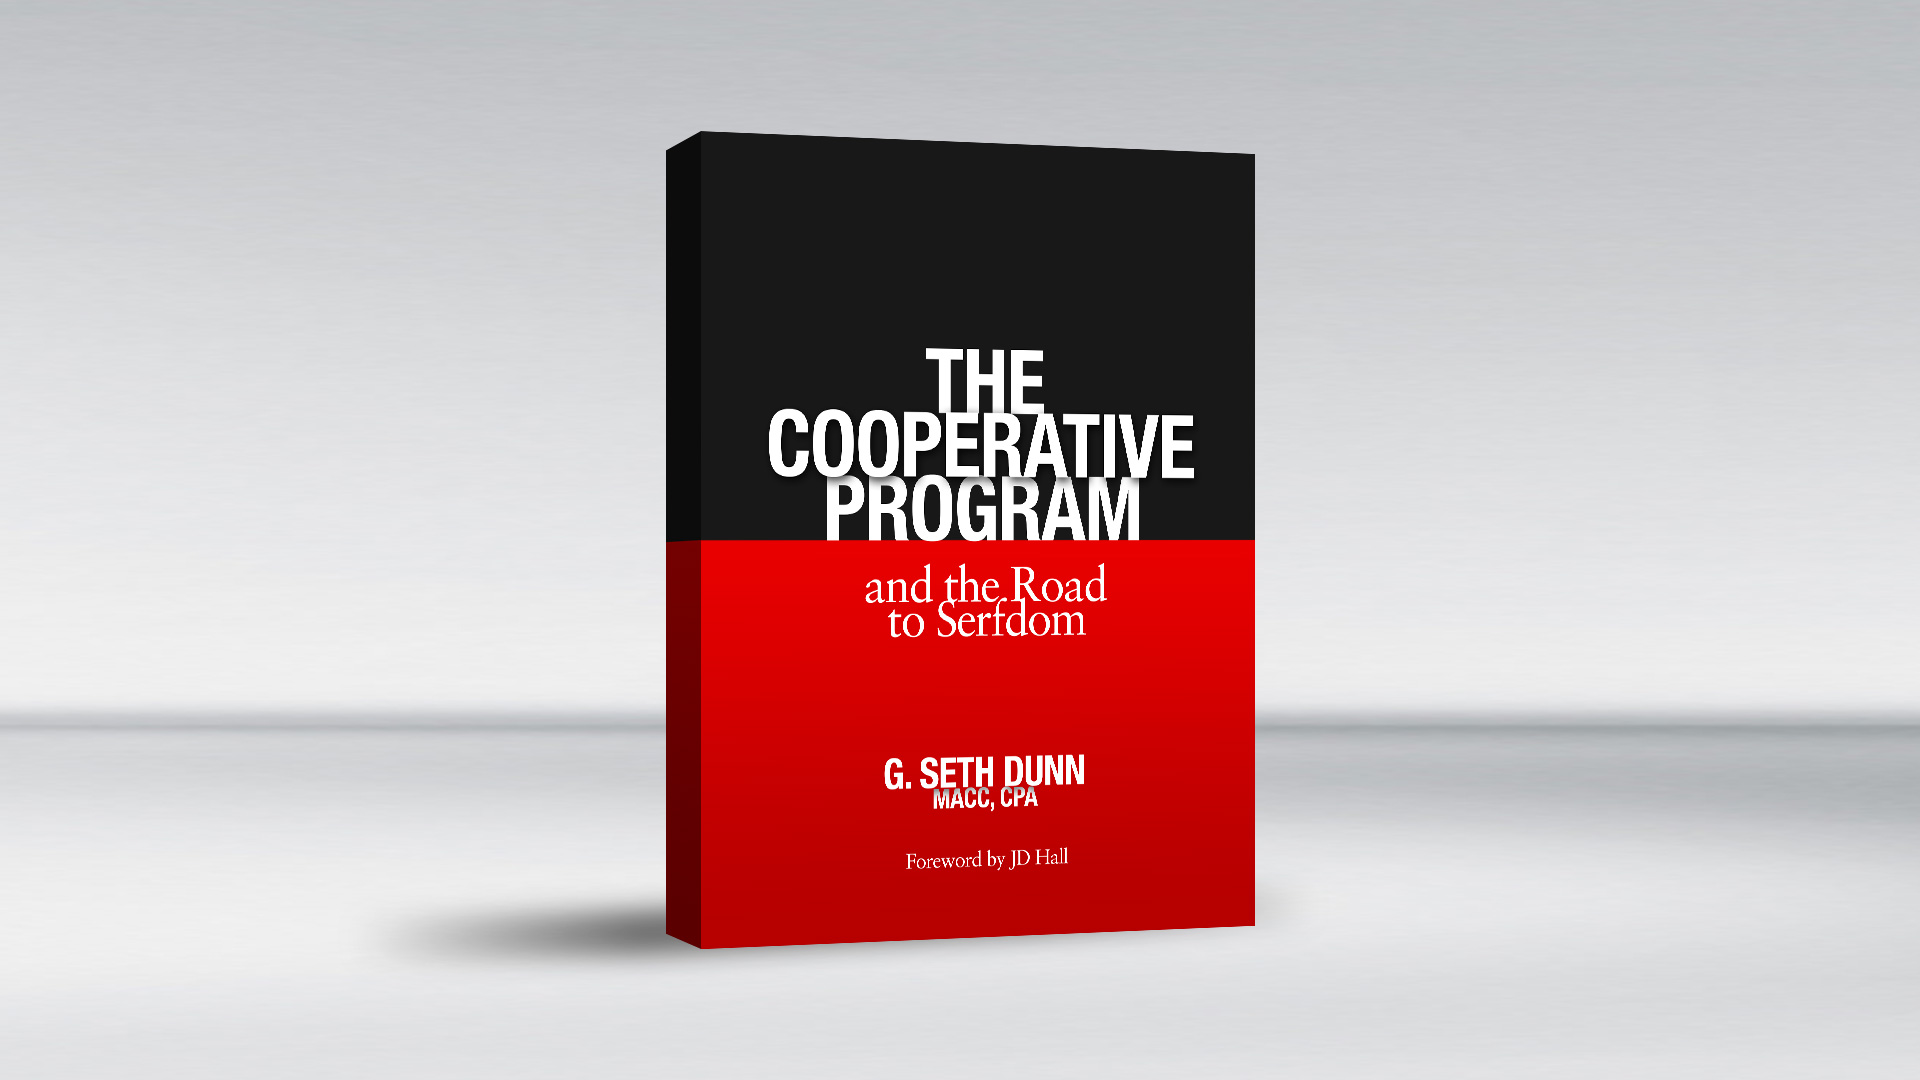 Free Ebook: The Cooperative Program and the Road to Serfdom